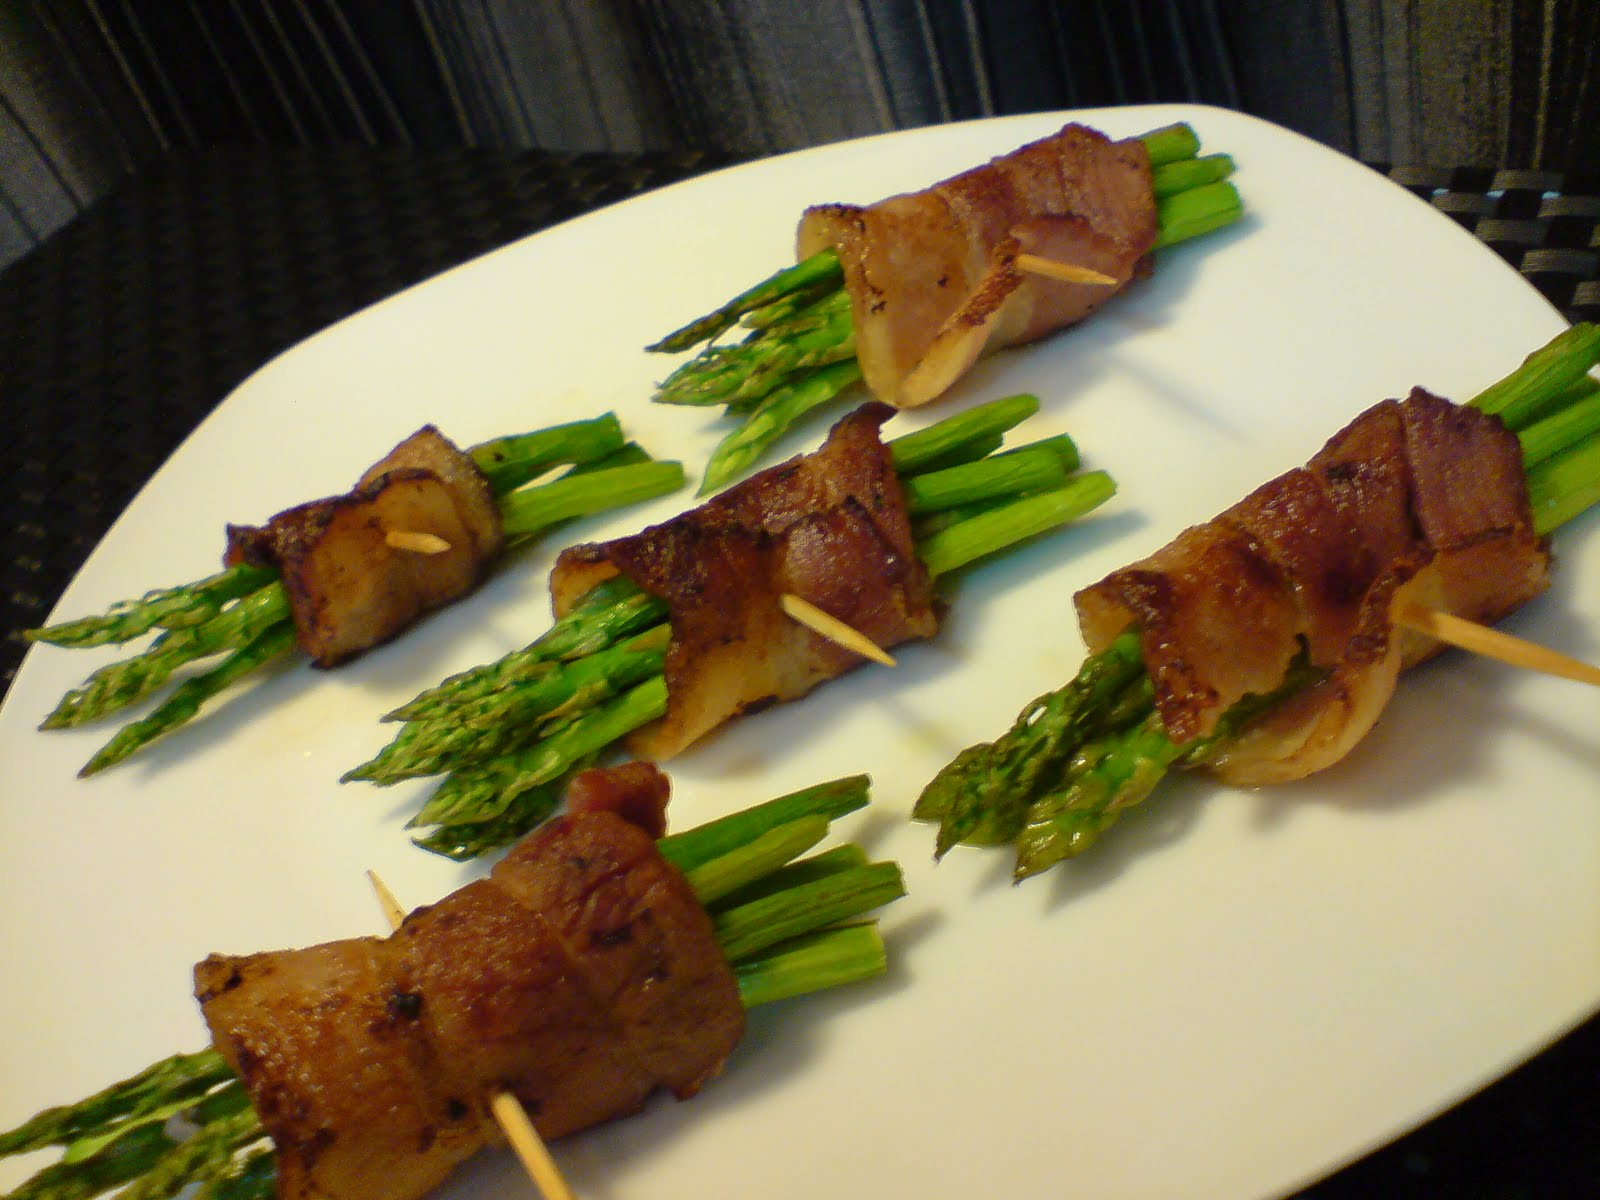 Grilled Asparagus in Bacon Rolls | Shan's Recipes